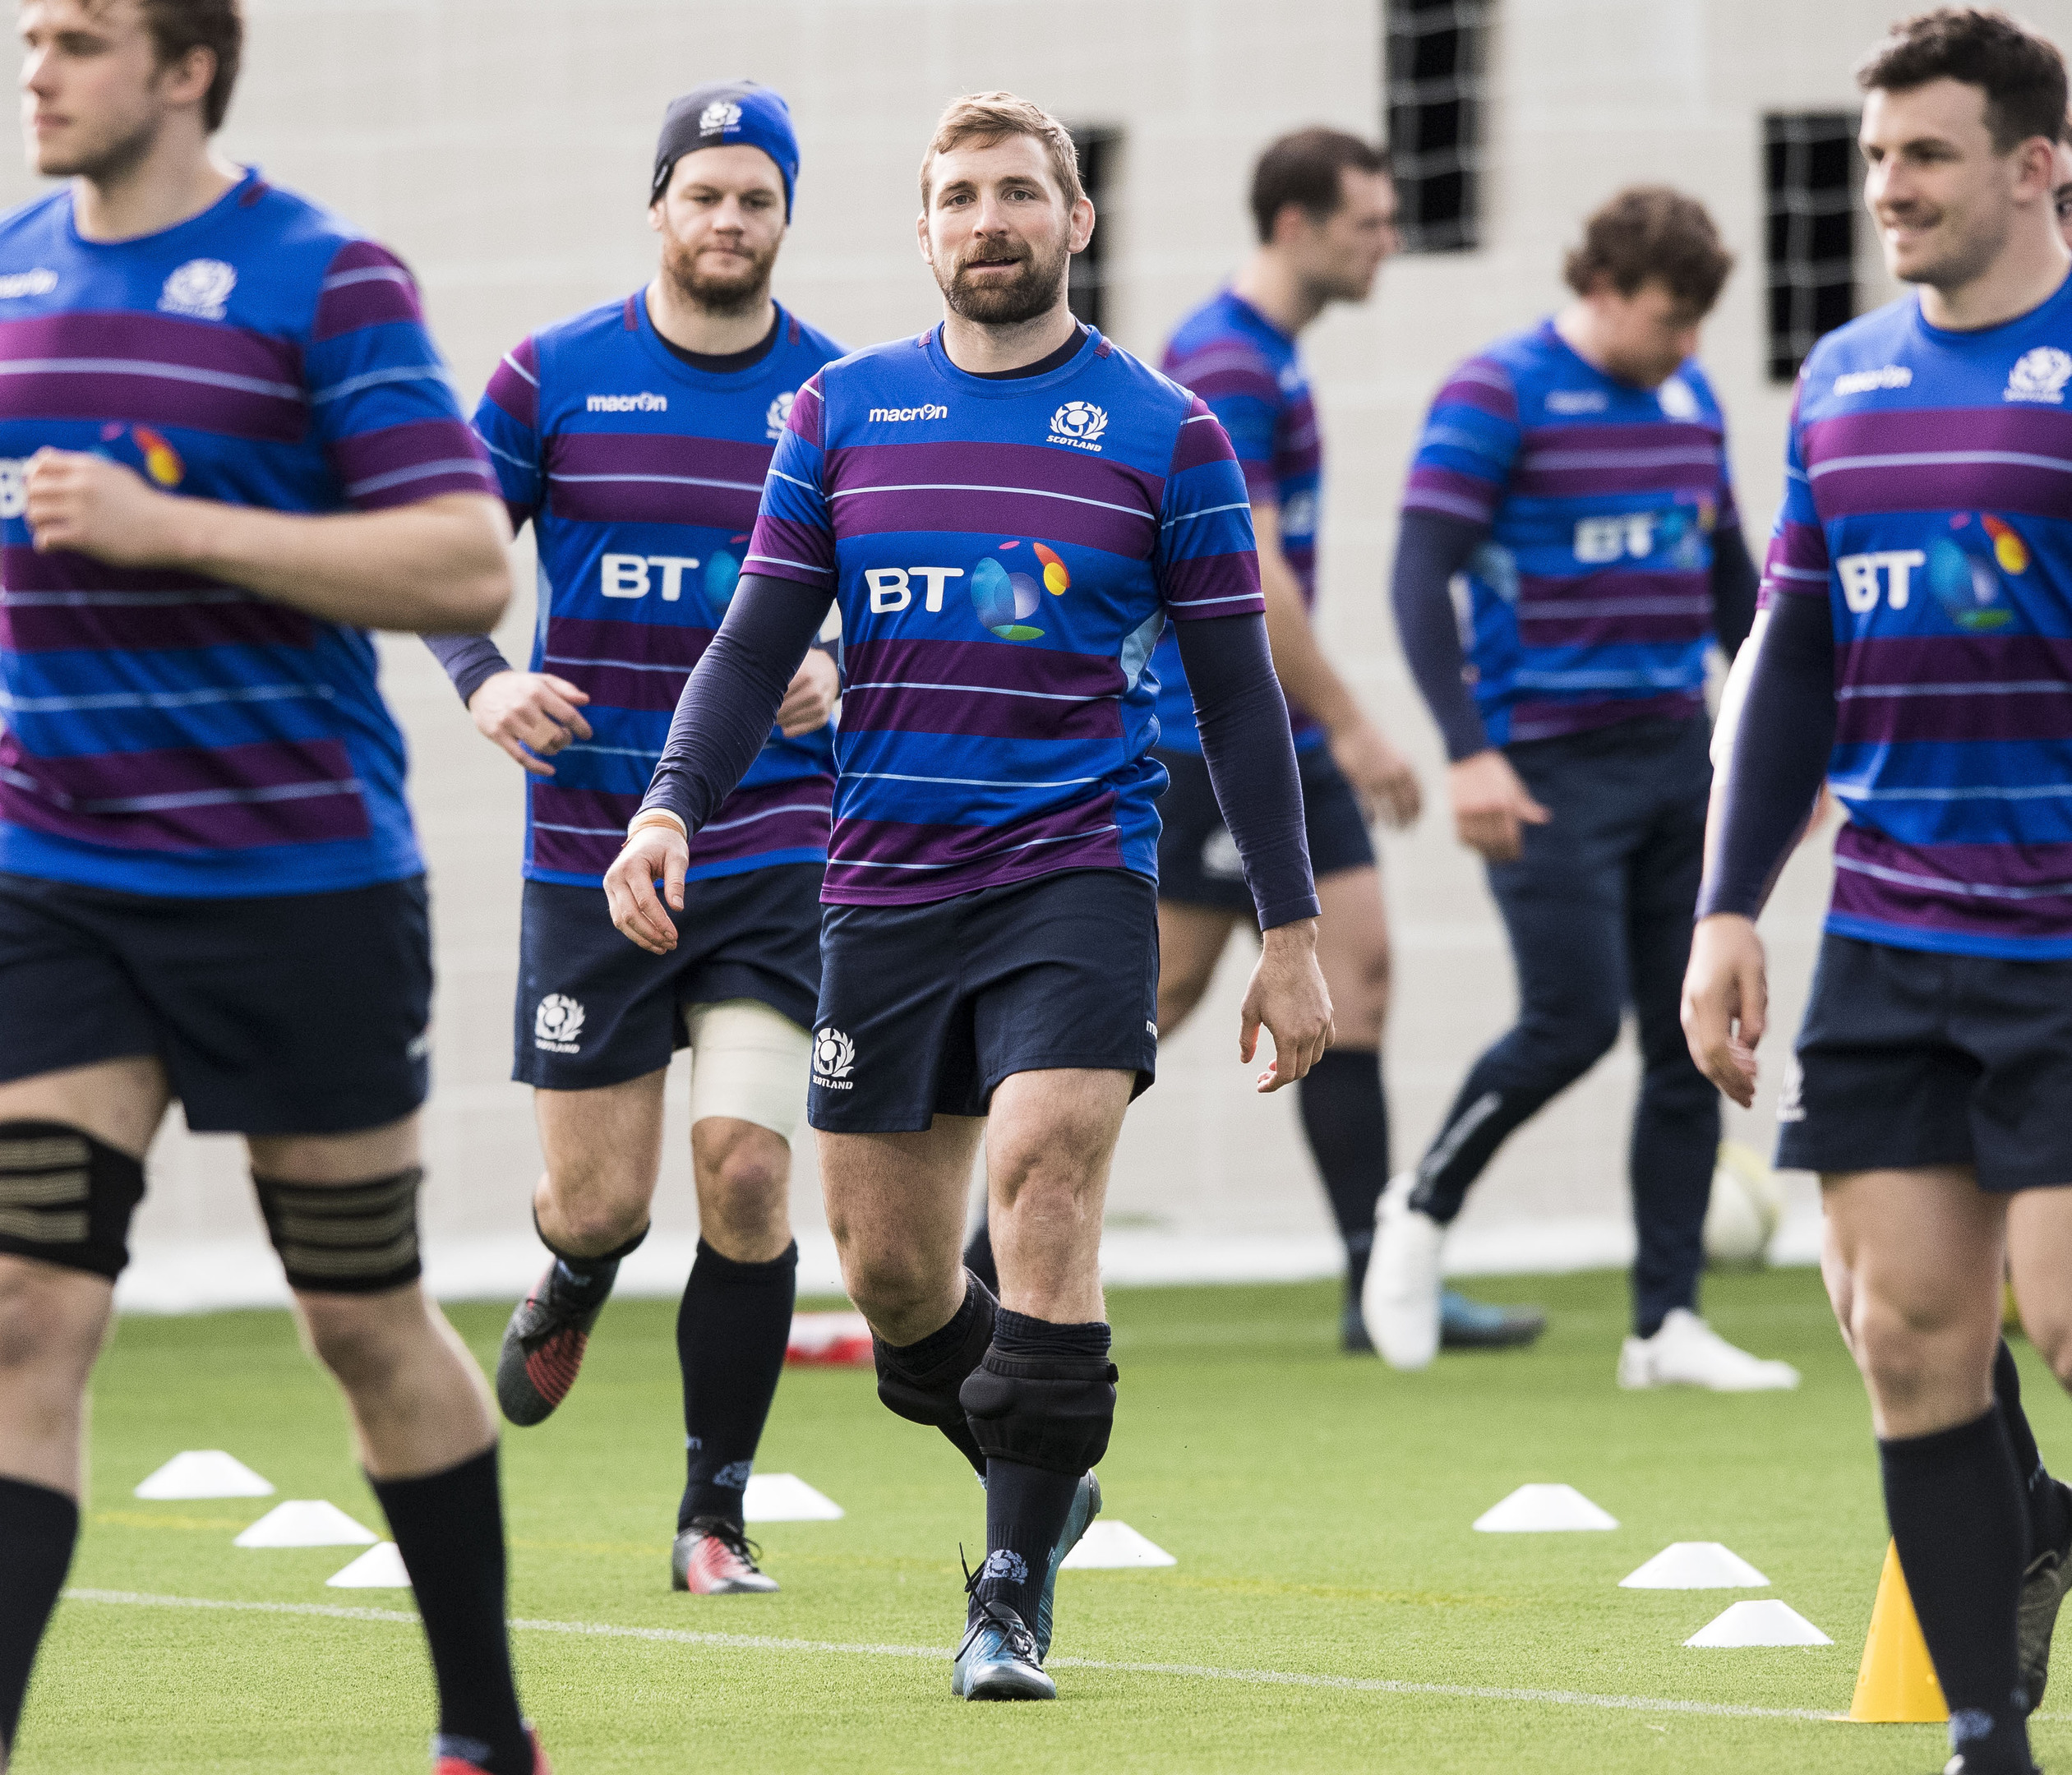 John Barclay at the centre of training this week as Scotland prepare for Twickenham.